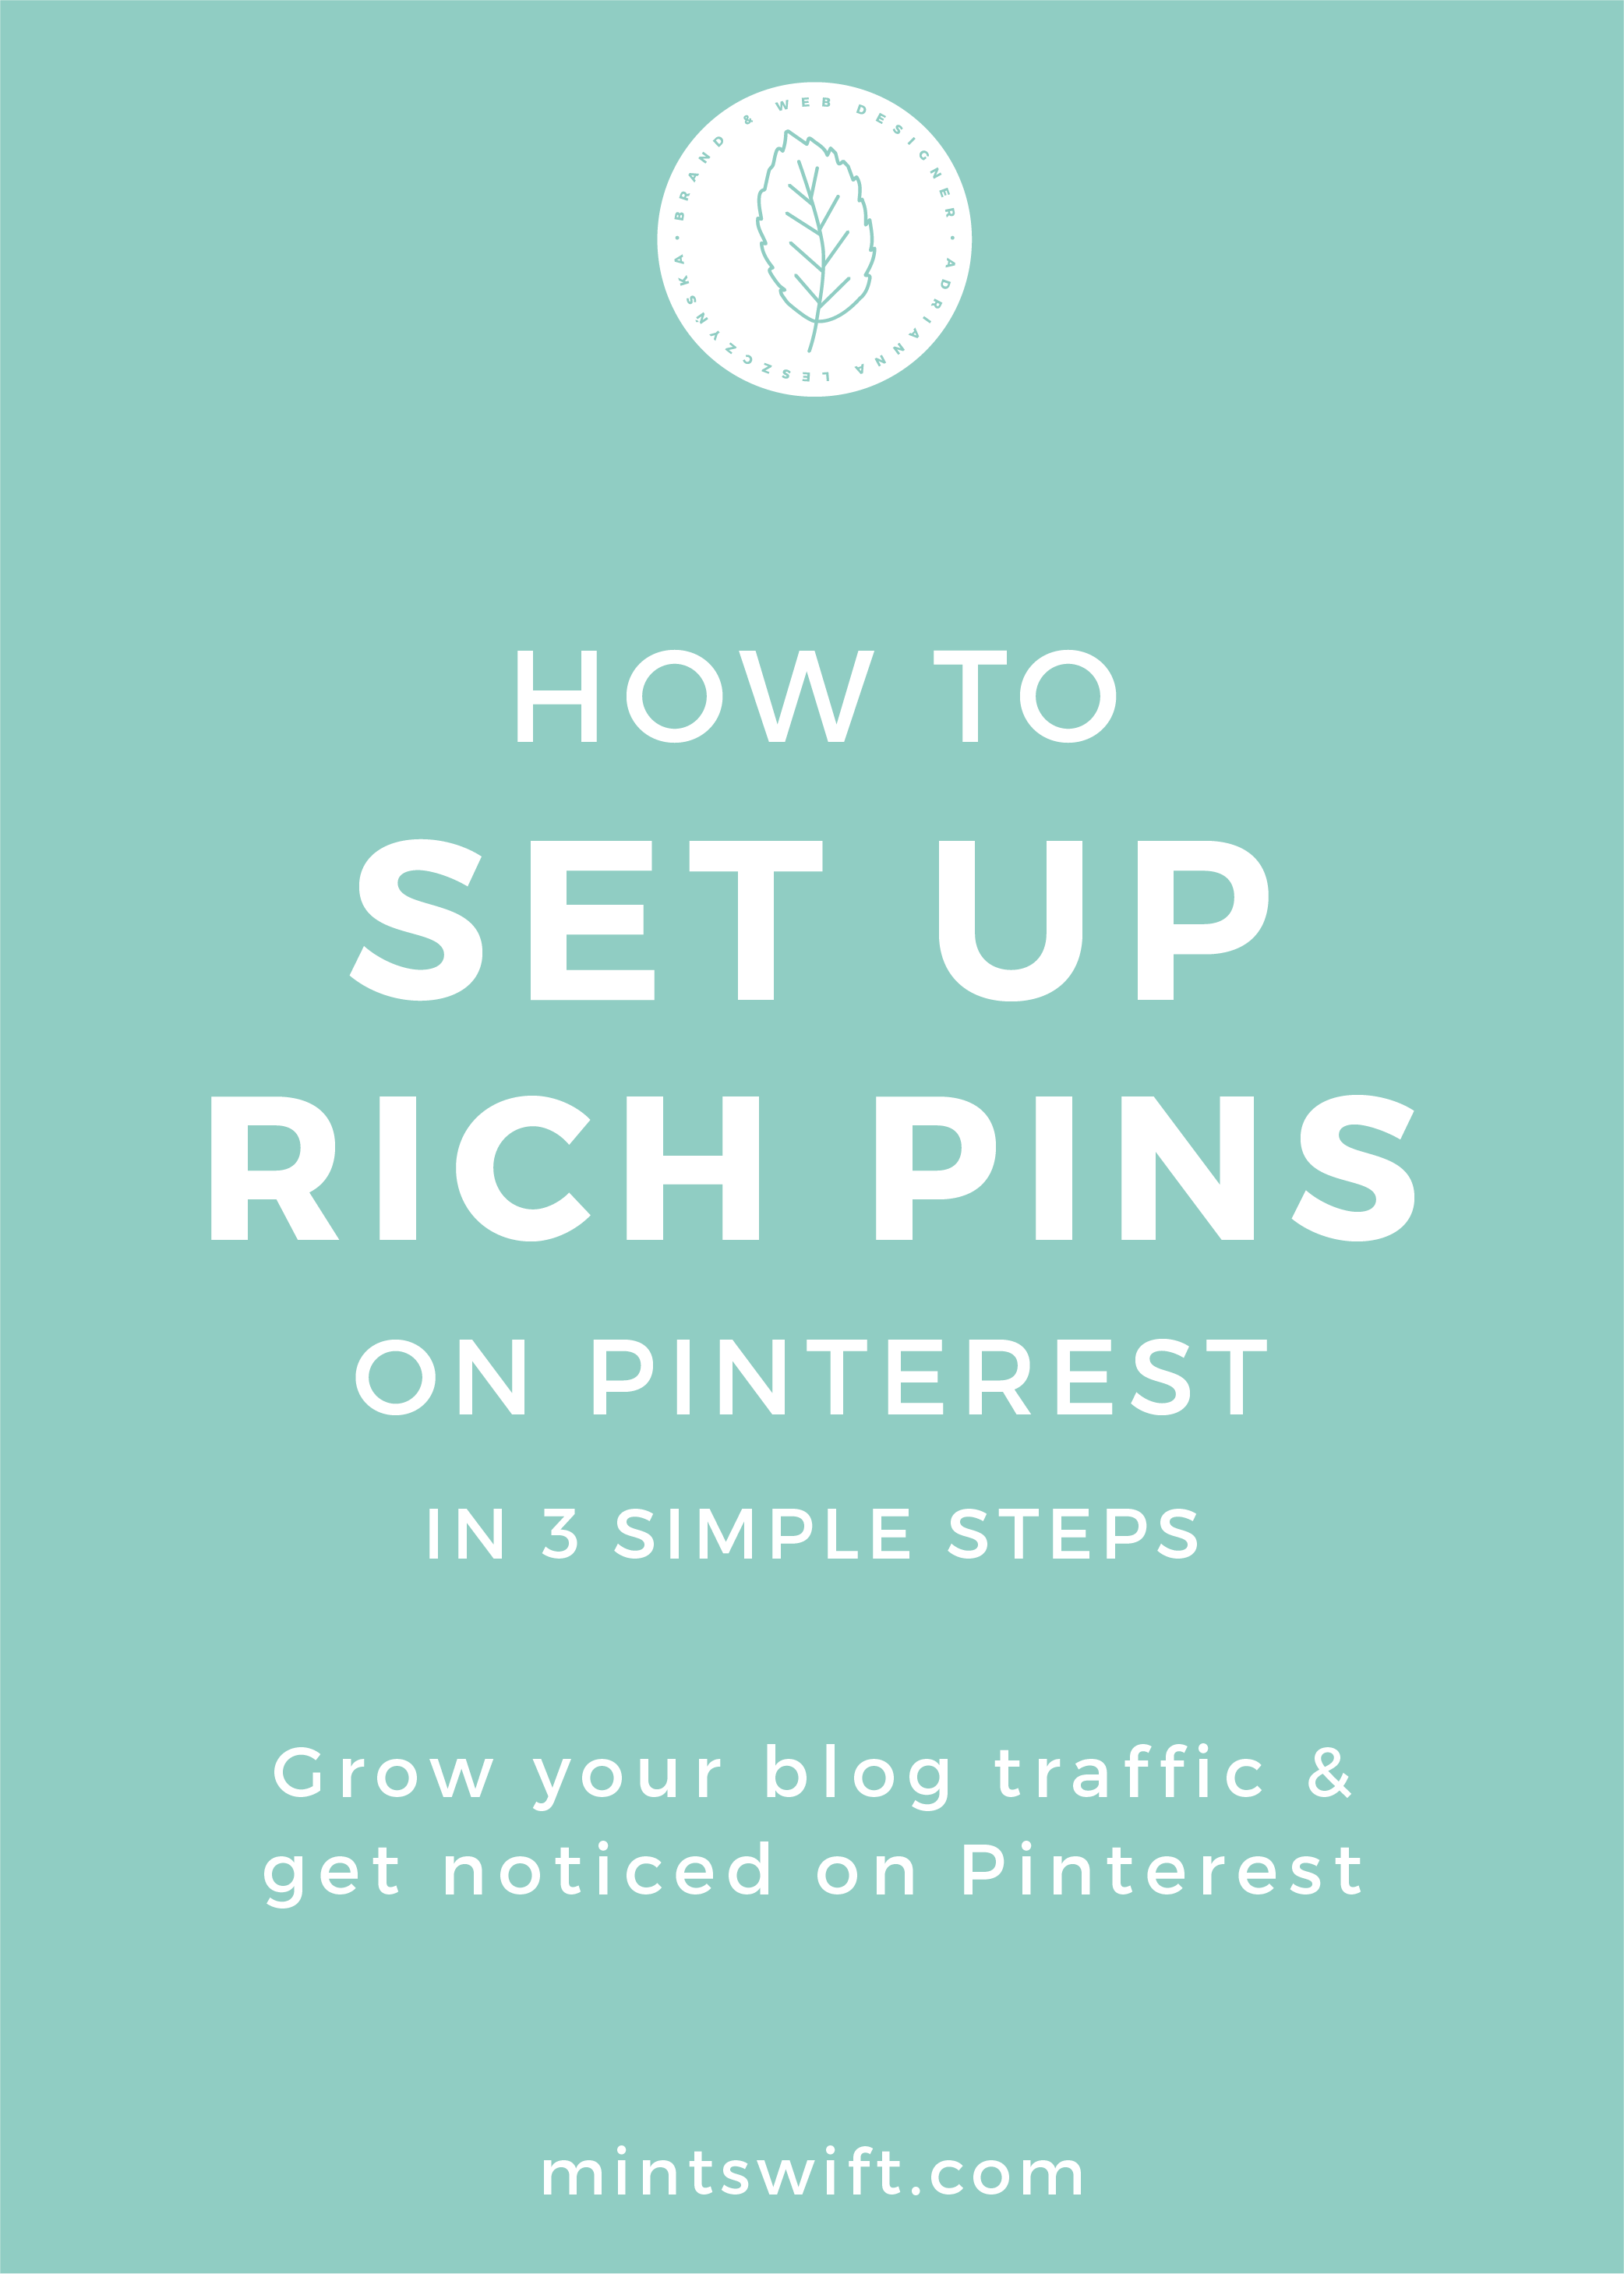 How to Set Up Rich Pins on Pinterest in 3 Simple Steps. Grow Your Blog Traffic & Get Noticed on Pinterest - MintSwift